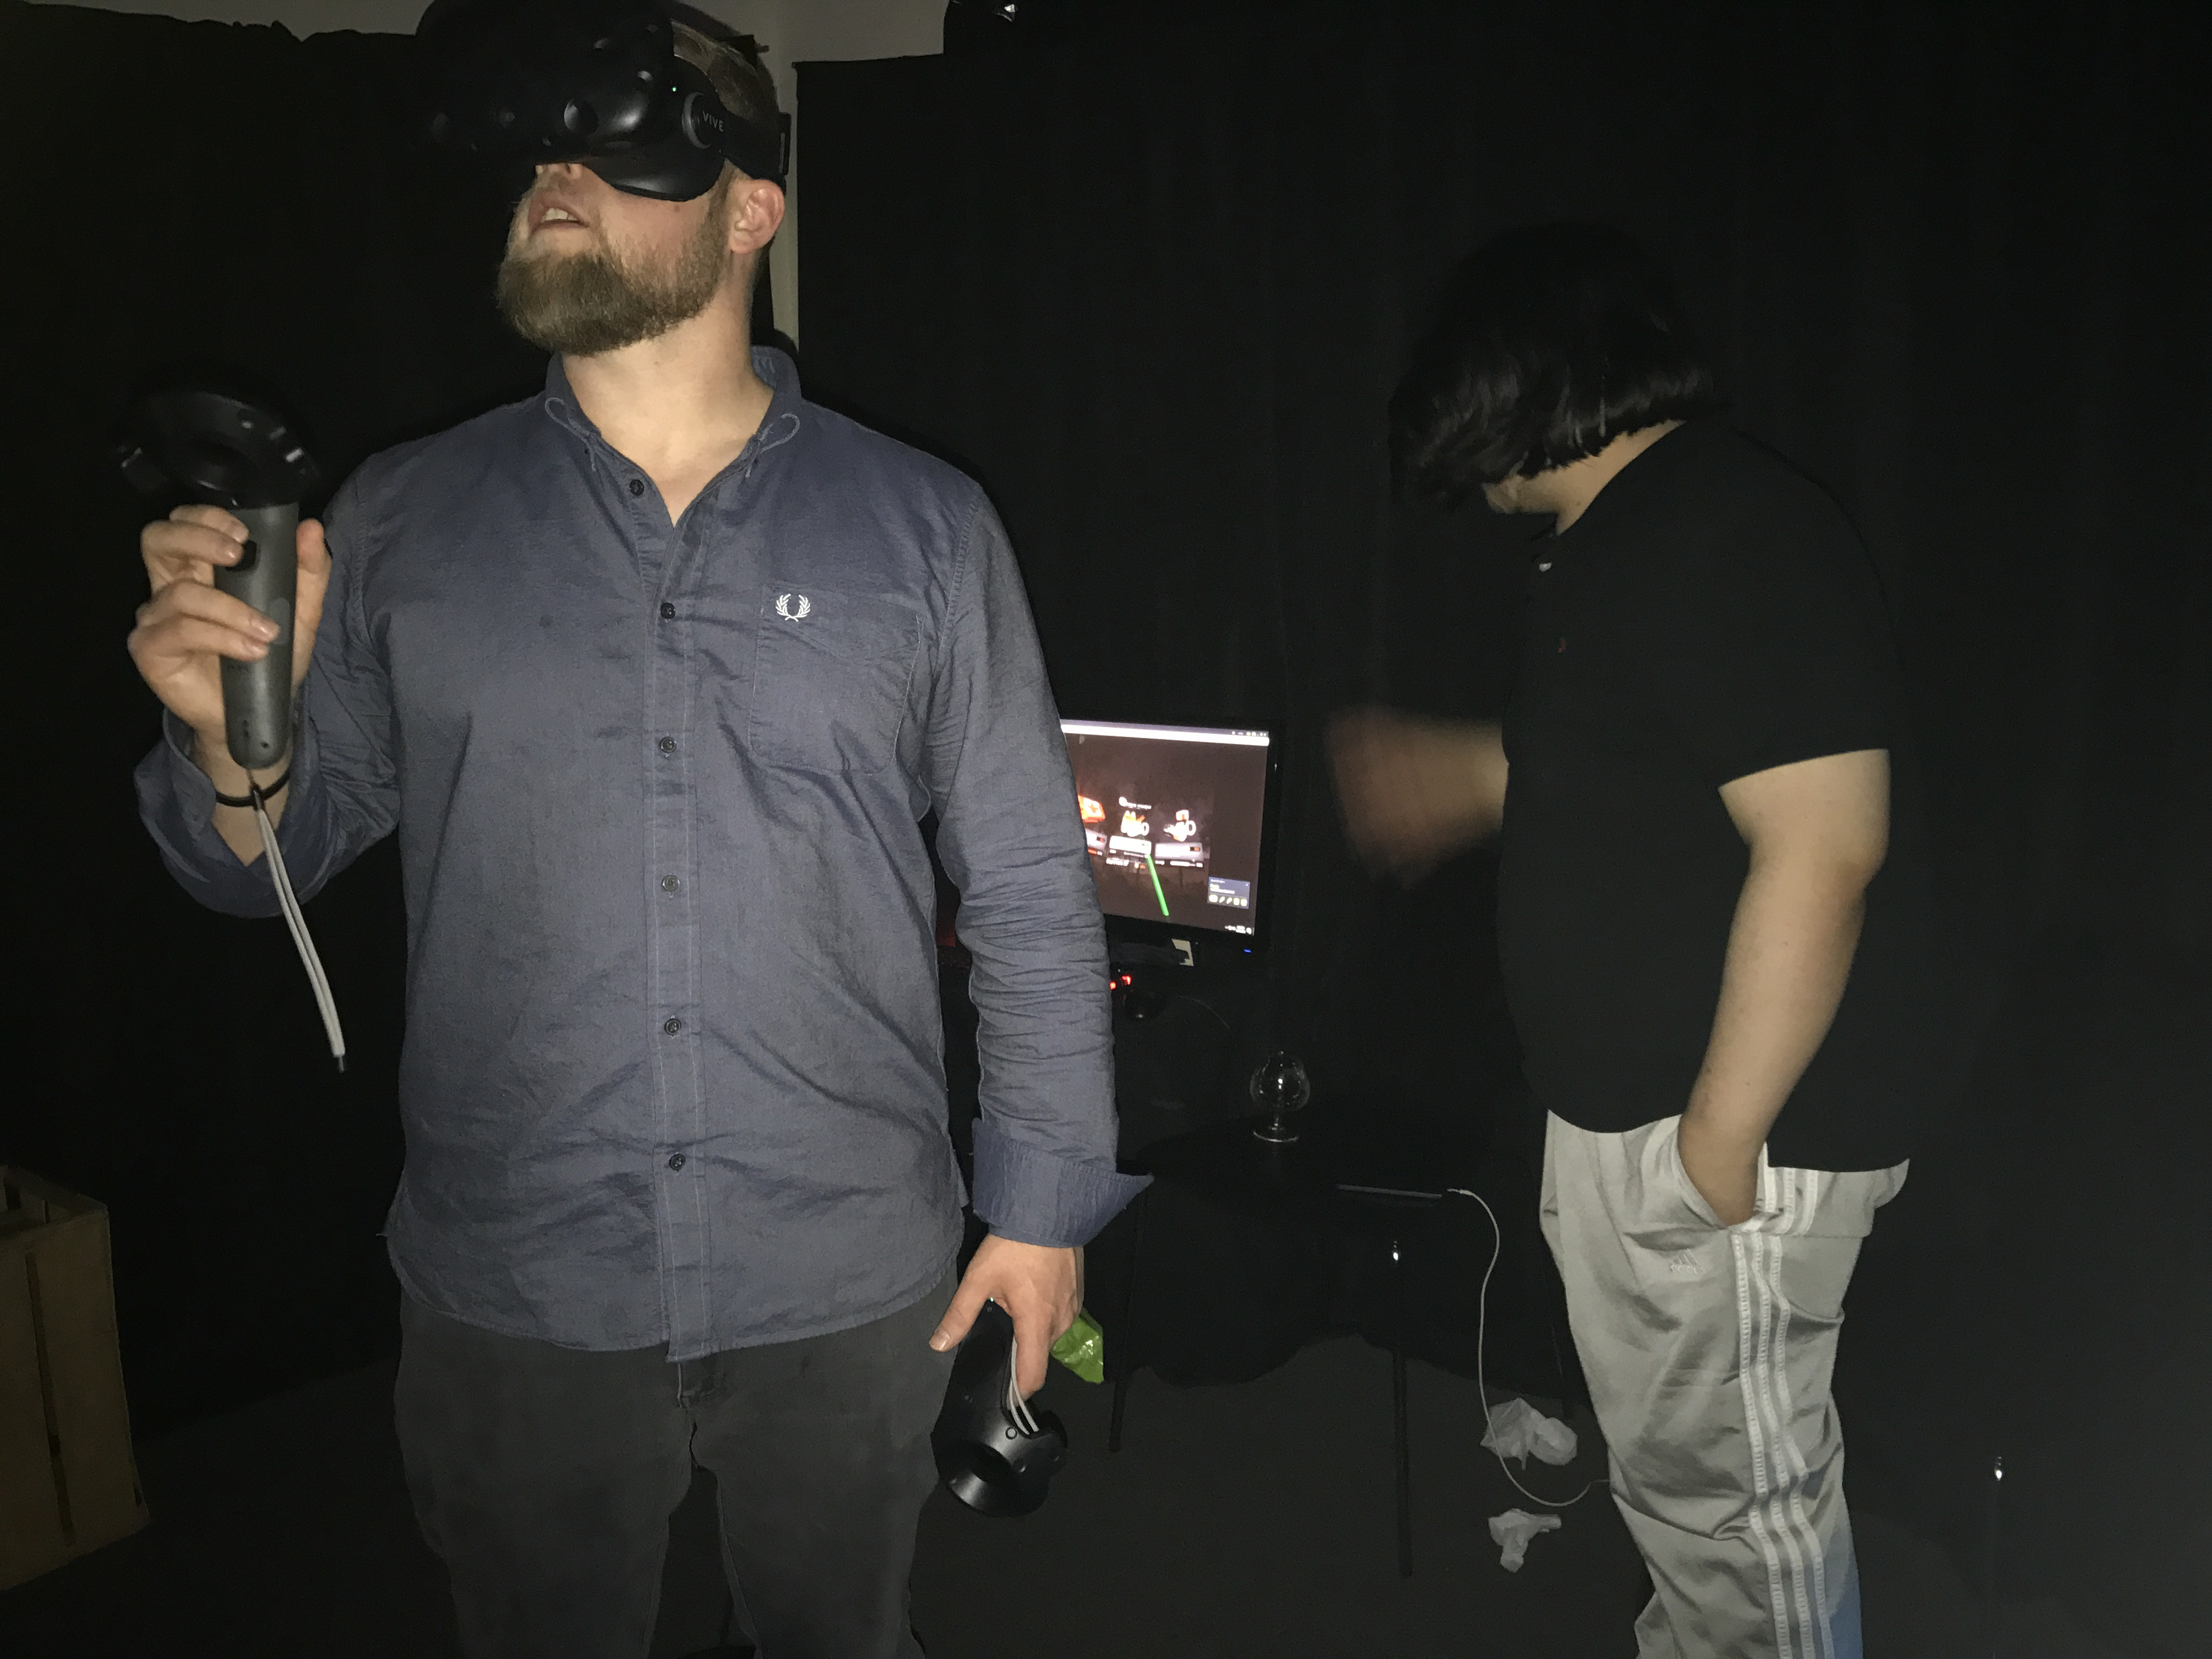 VR Haunted House, Virtual Reality Haunted House, haunted houses denver, Justin Mskowitz, Epic Brewing, Megan Carthel